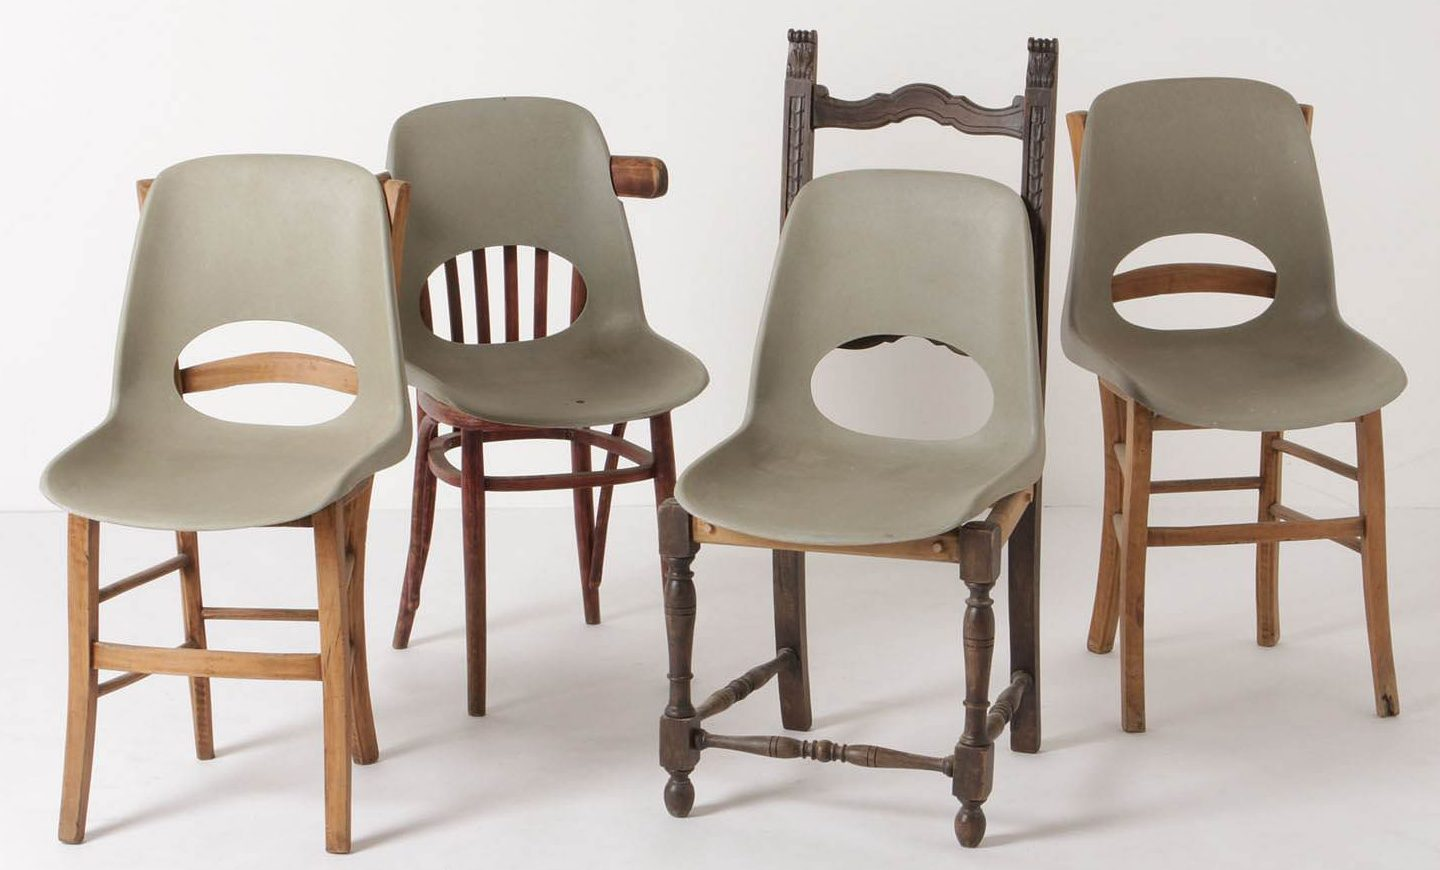 Ornament, Crime, and The Monobloc Chair